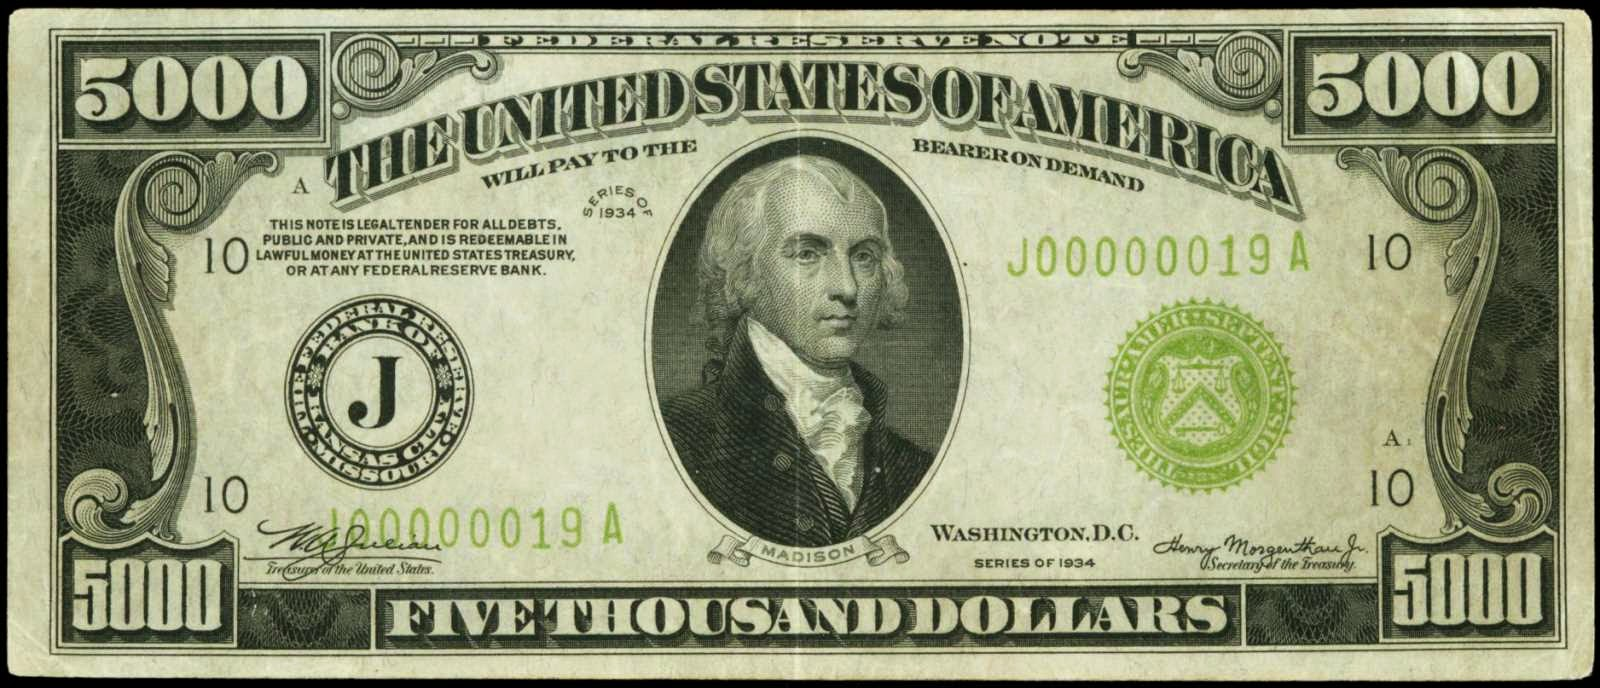 Five Thousand Dollar Federal Reserve Note